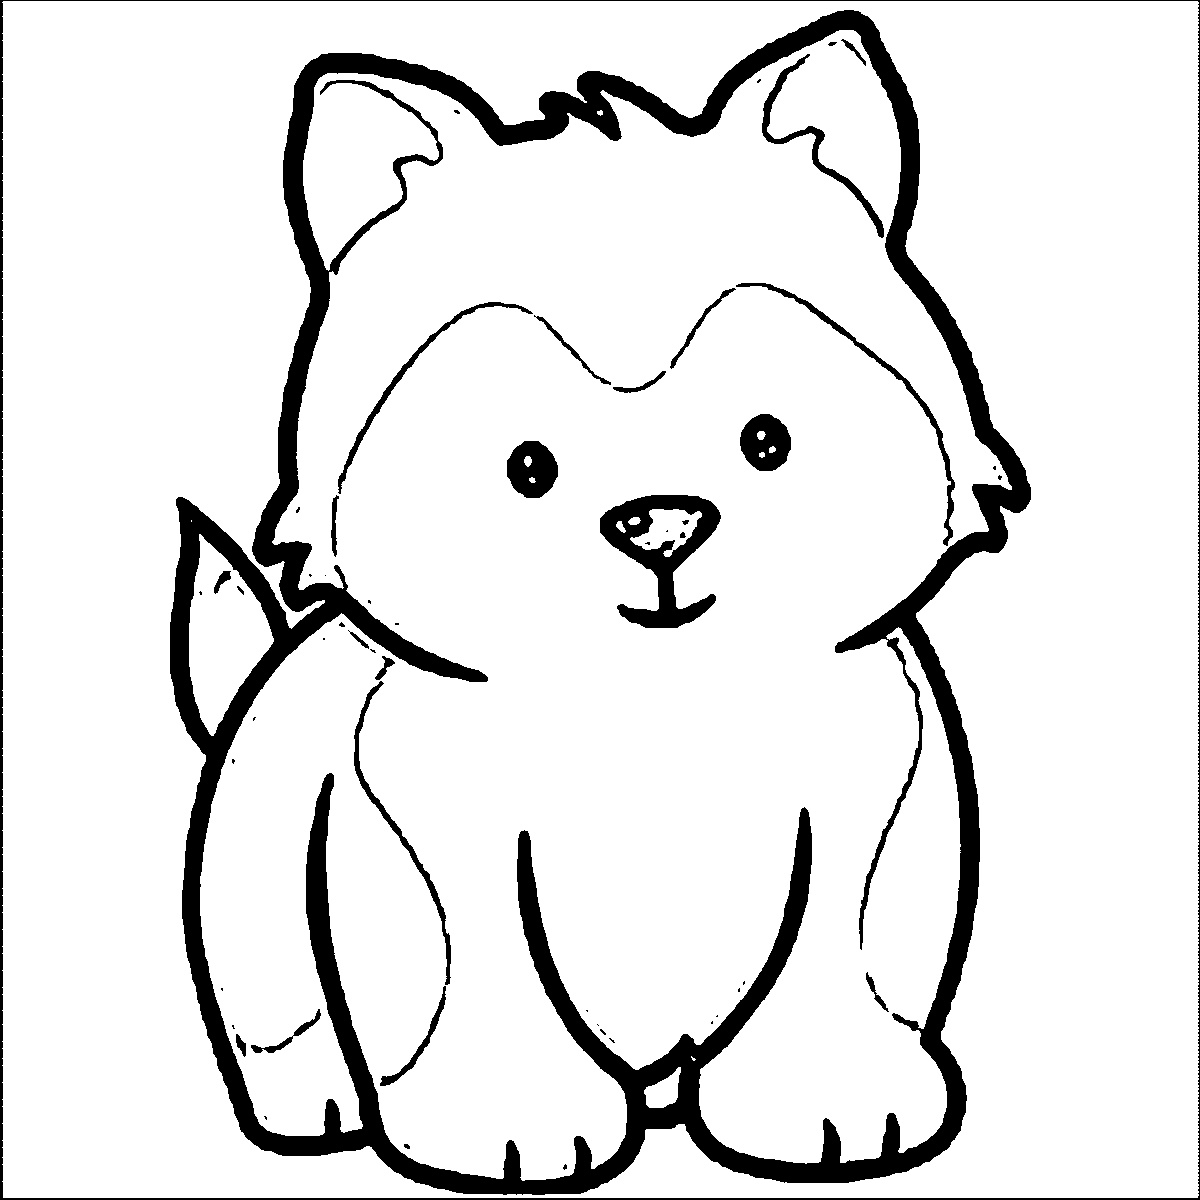 dogs pictures to color dog to color for kids dogs kids coloring pages pictures to color dogs